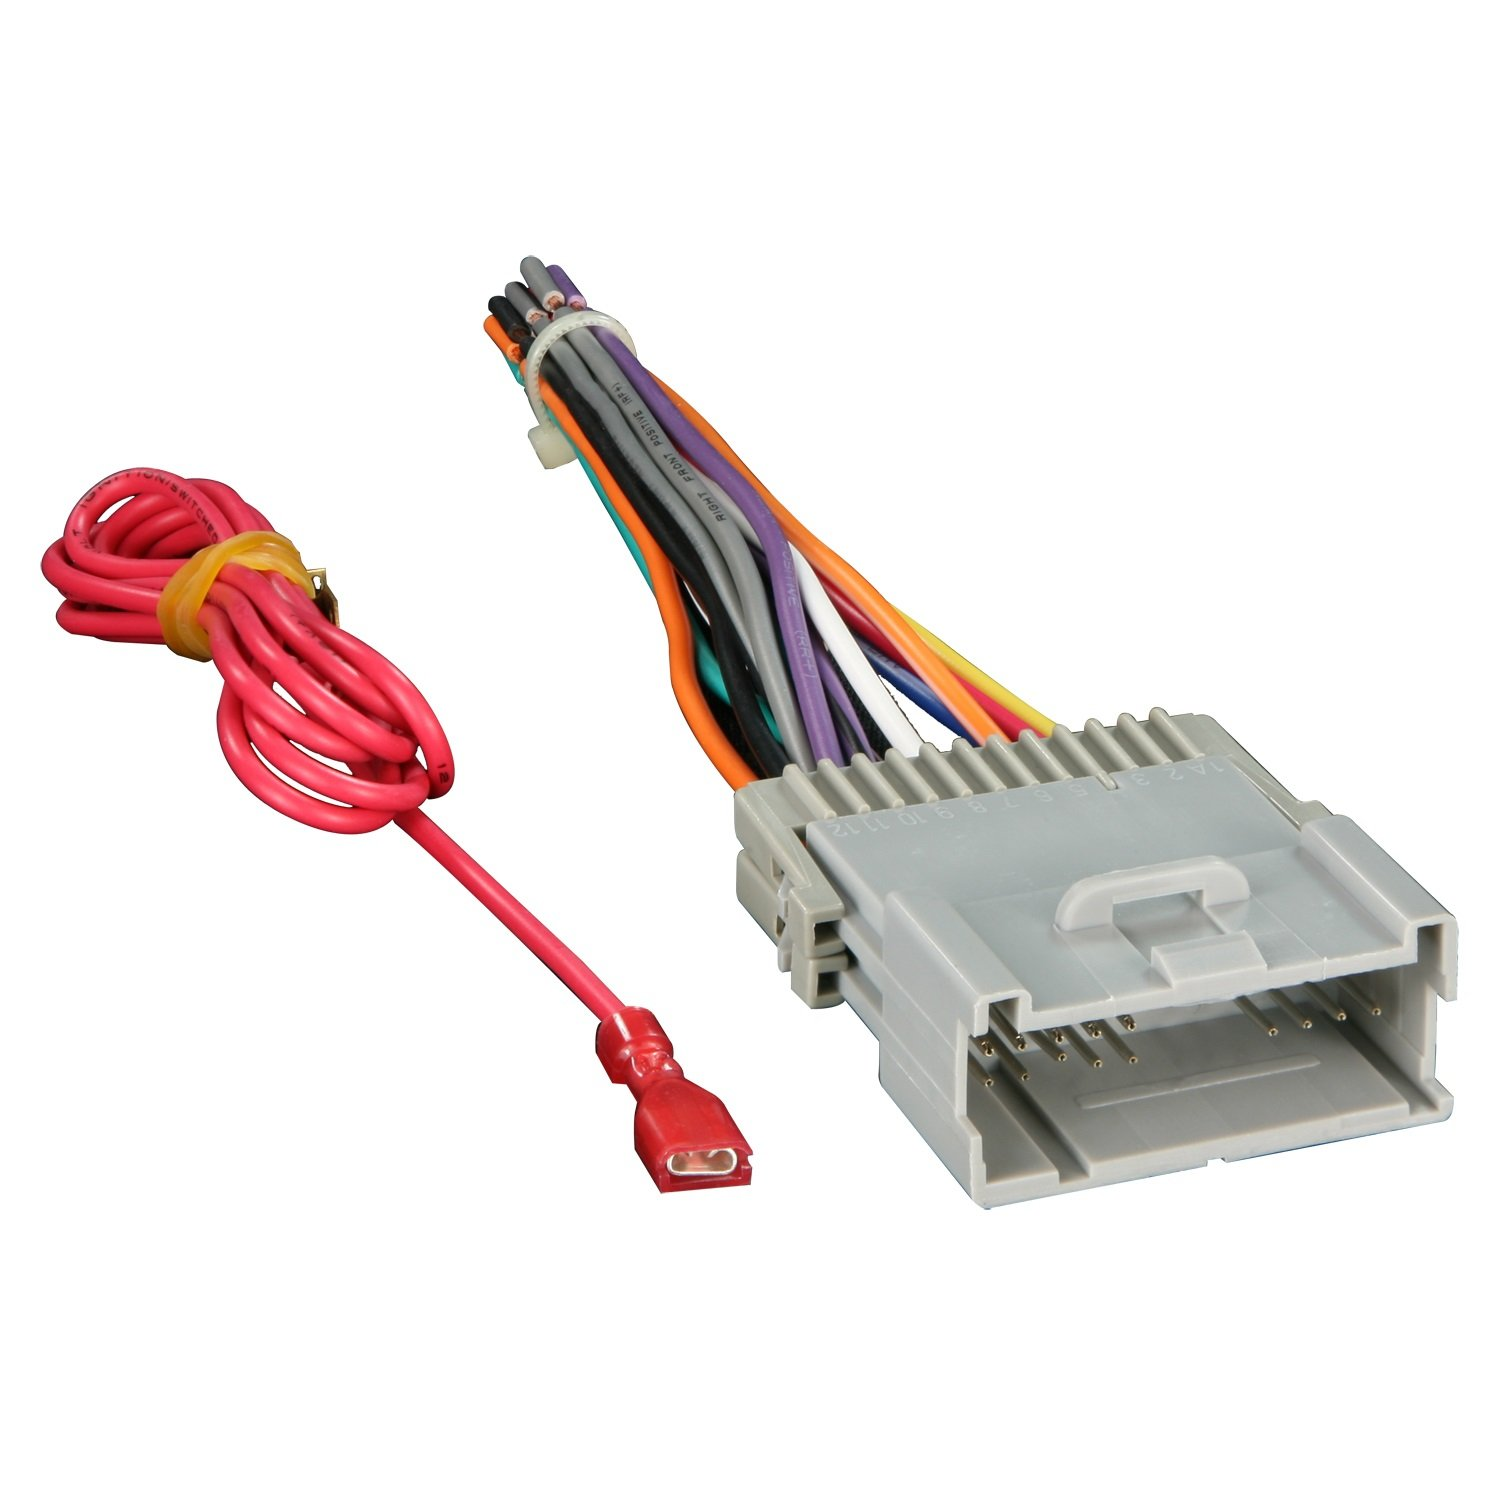 61eewxp9orL._SL1500_ amazon com metra 70 2003 radio wiring harness for gm 98 08 wiring harness trade show at virtualis.co